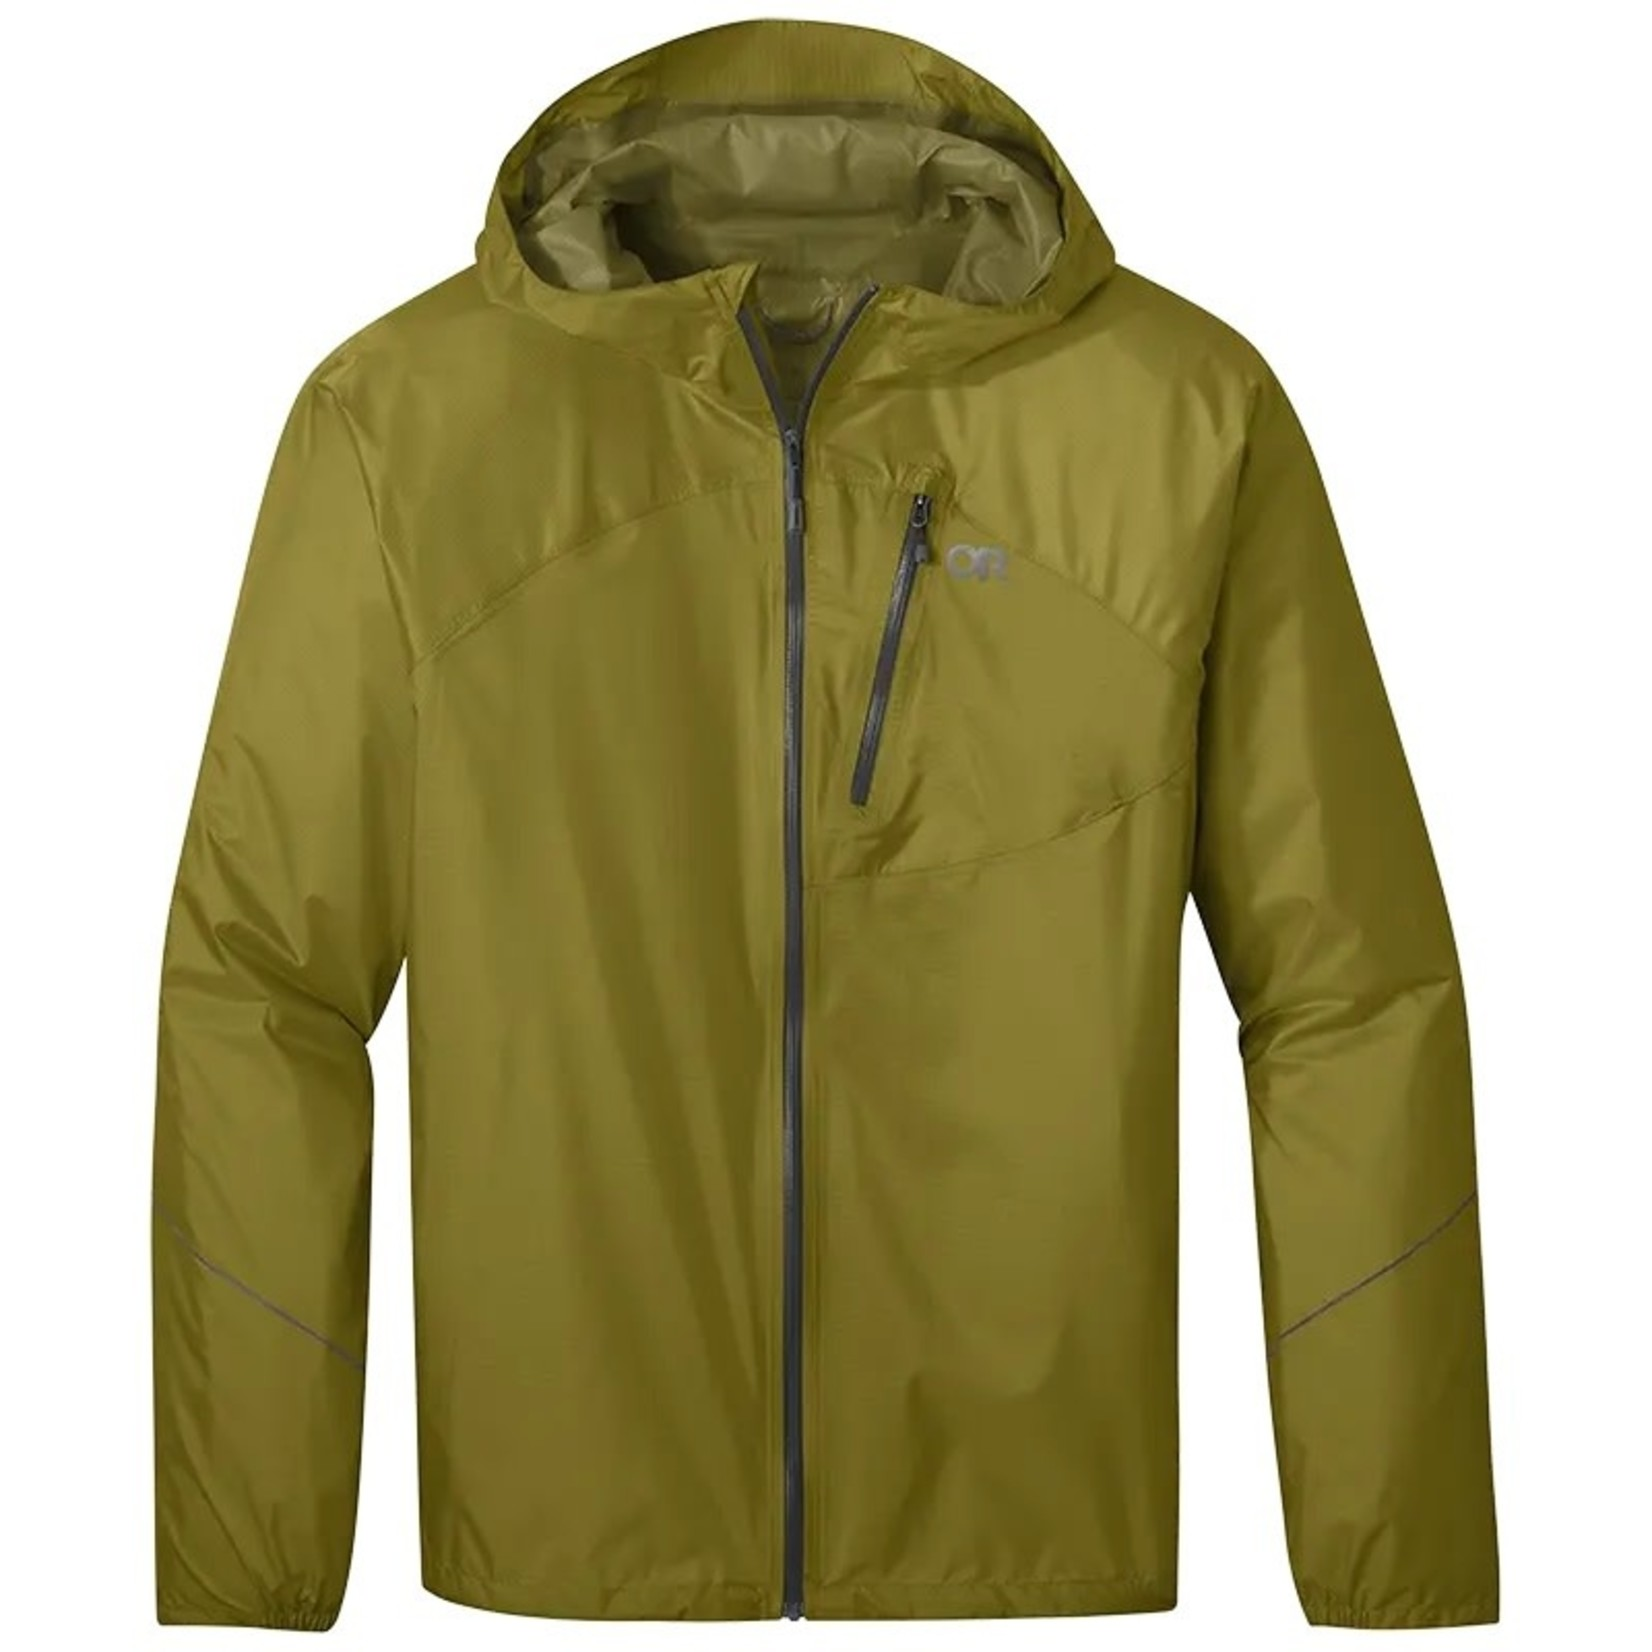 Outdoor Research Manteau Outdoor Research Helium - Homme